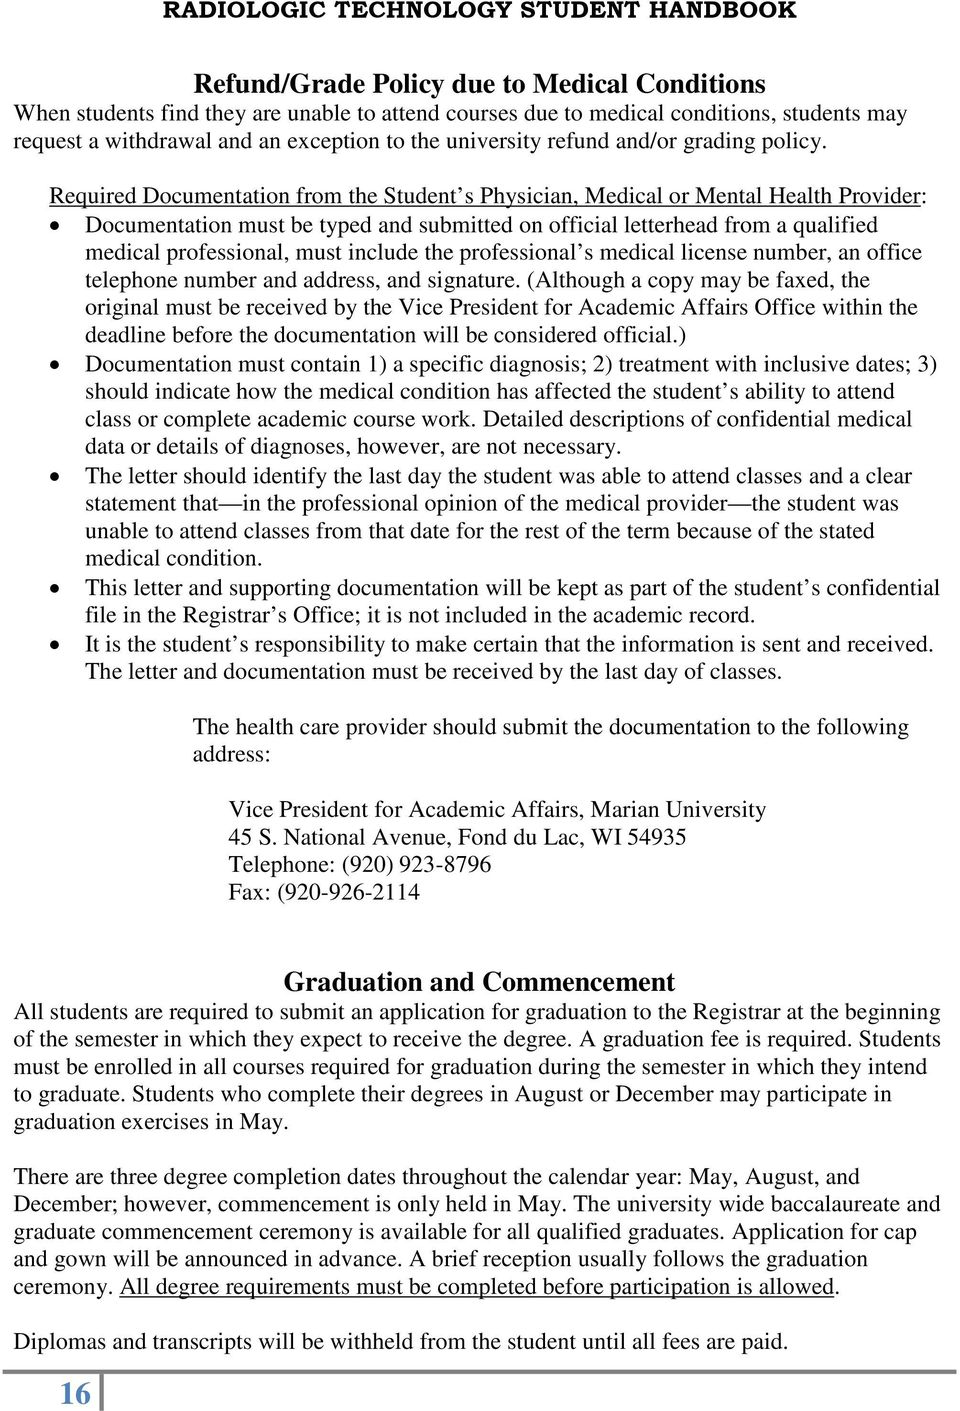 Required Documentation from the Student s Physician, Medical or Mental Health Provider: Documentation must be typed and submitted on official letterhead from a qualified medical professional, must